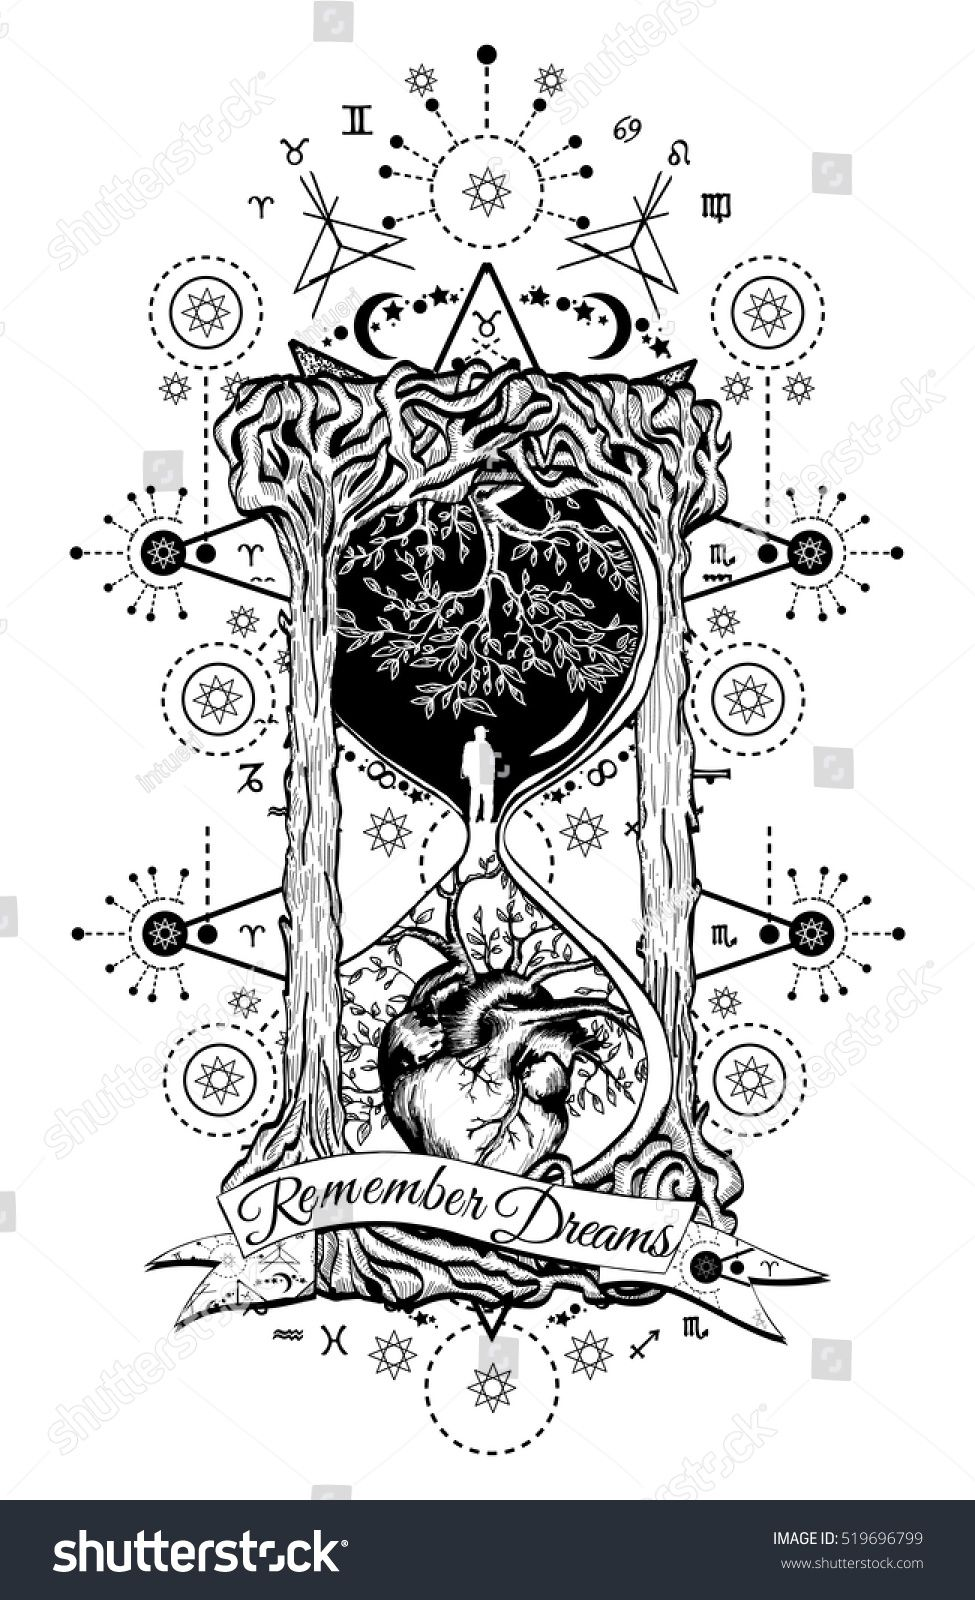 Pin by amber harness on tattoos for me pinterest mystical tree and heart in hourglass symbol of life and death mystical tattoo man in hourglass tattoo biocorpaavc Images